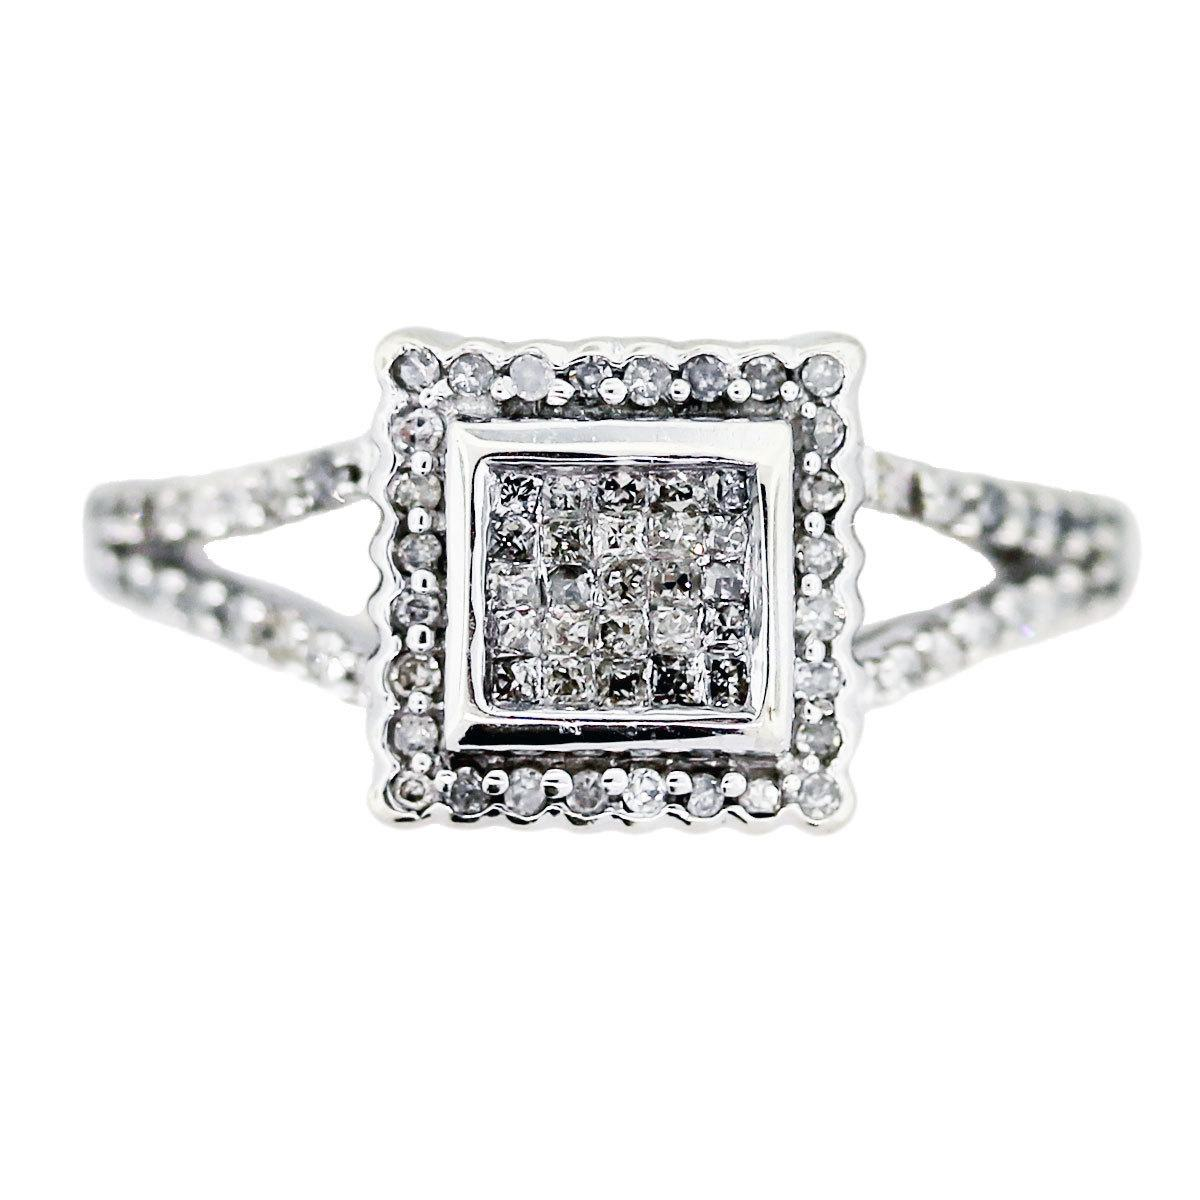 diamond rings under 1000 gallery affordable engagement - Wedding Rings Under 1000